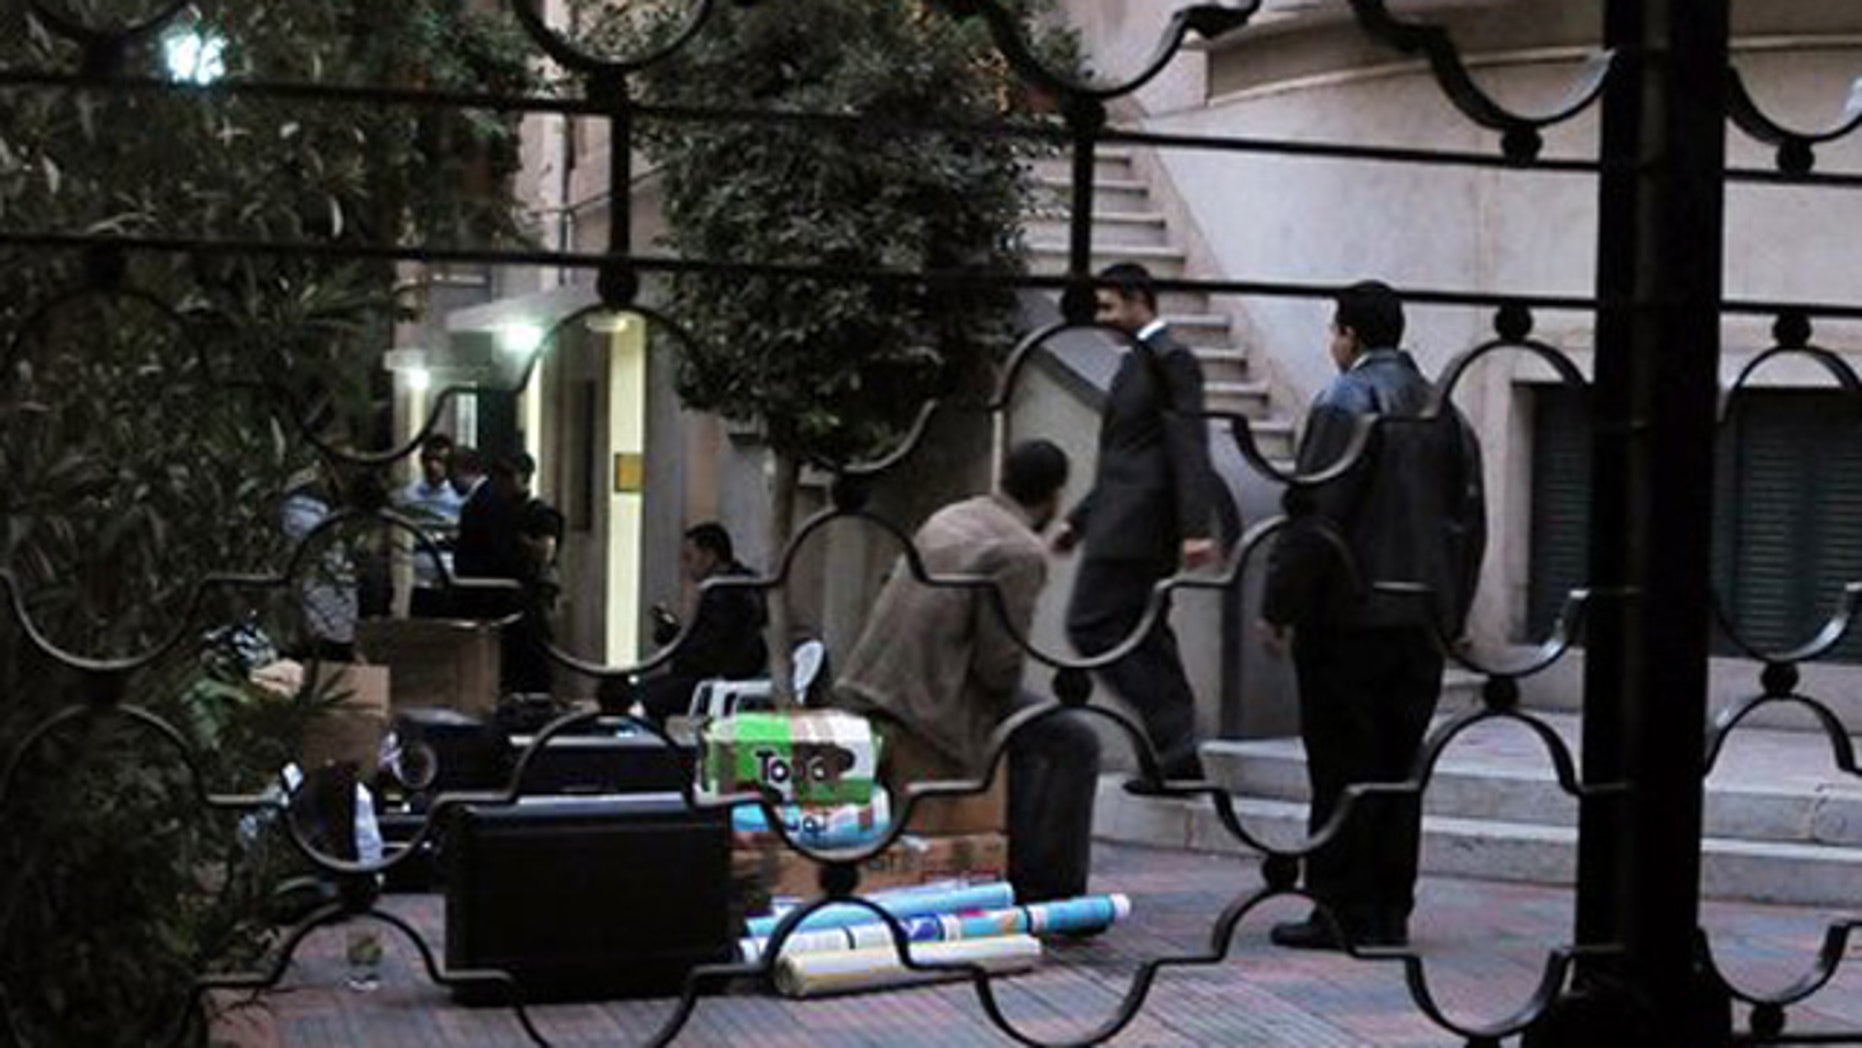 December 29, 2011: Egyptian police raid a non-governmental organization office in Cairo, Egypt.